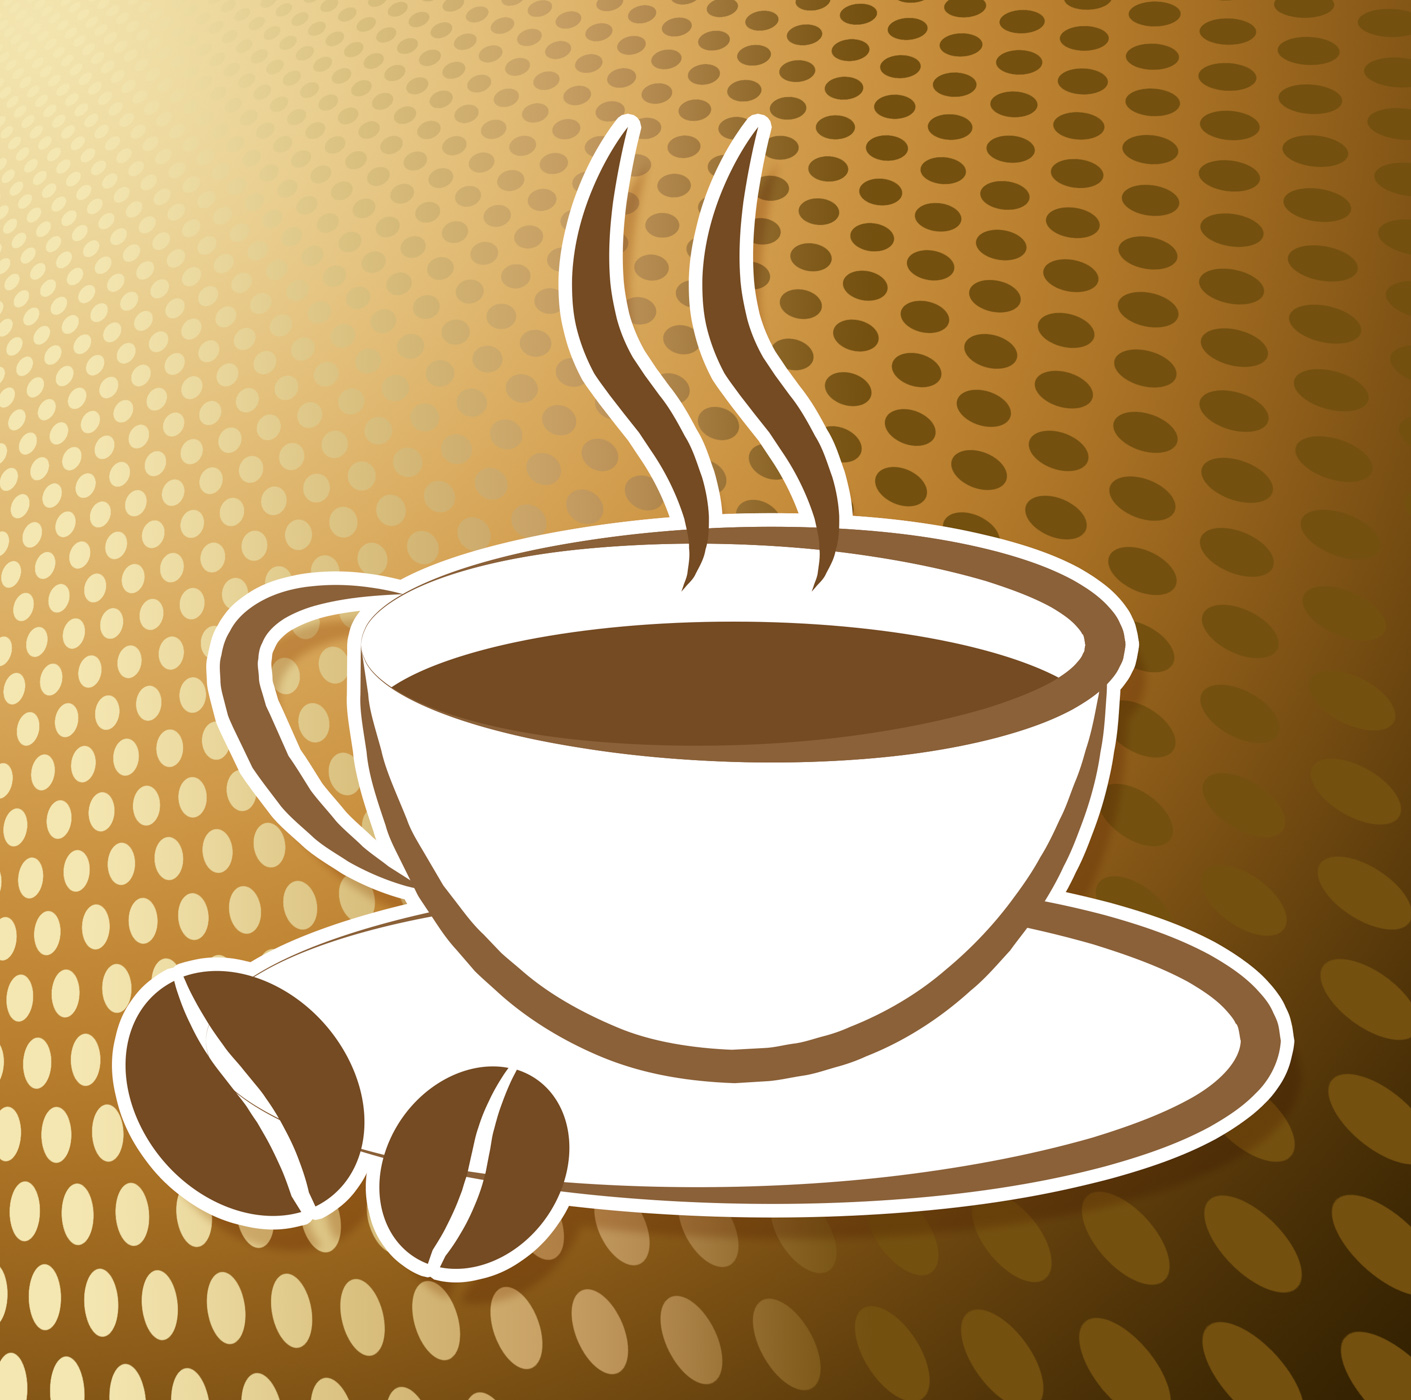 Coffee cup icon indicates drink cups and cafe photo